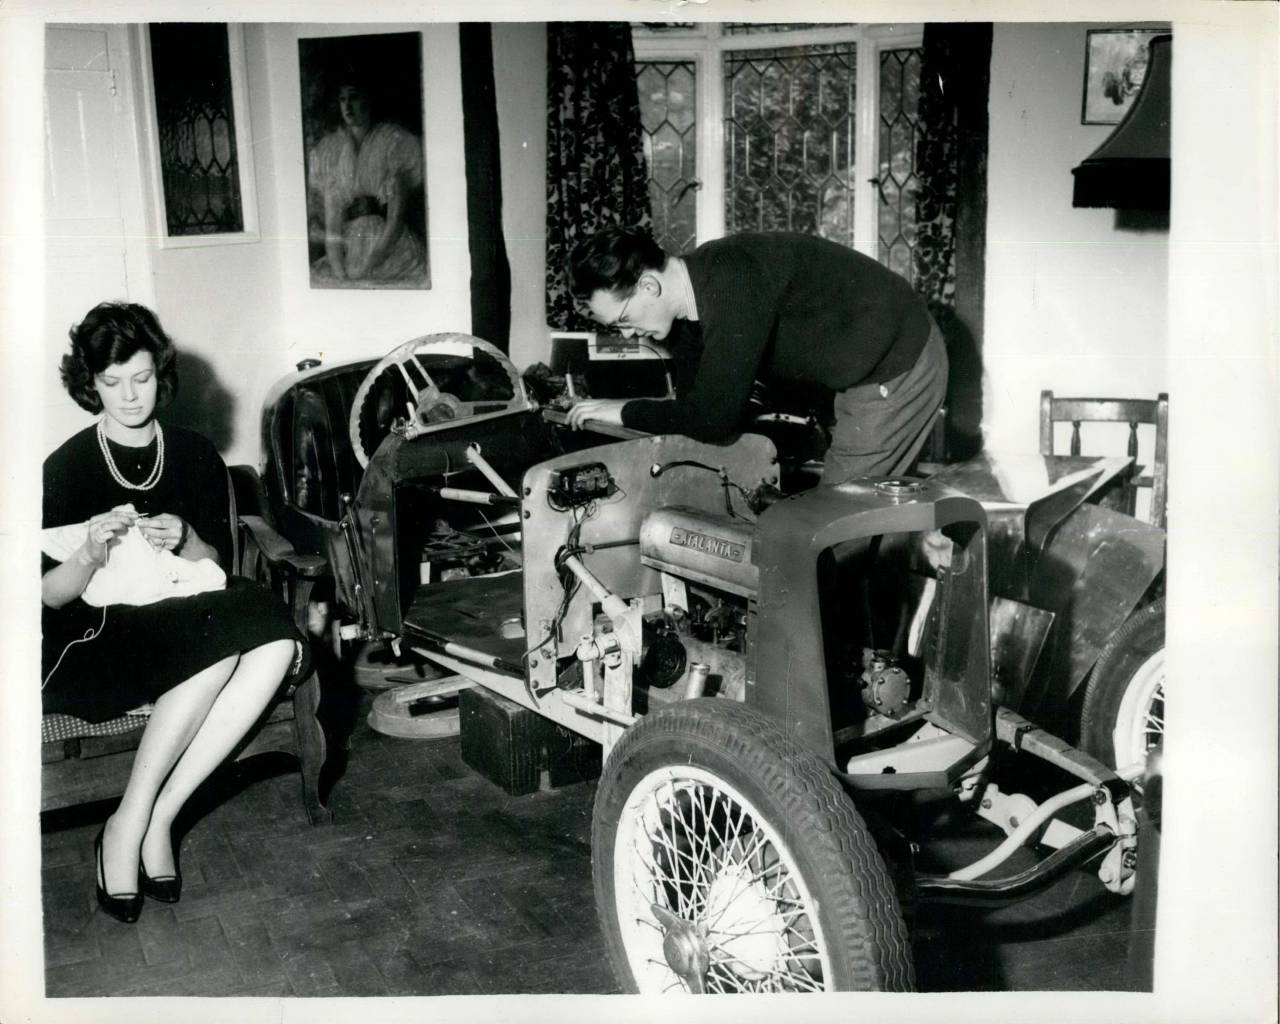 1966 - Vintage Car In The Gidding's Drawing Room: For three months Mrs. Christine Giddings has had the bits and pieces of a vintage motor car cluttering up her best drawing room. Her car enthusiast husband, Peter, is assembling a car in which he hopes tor race, and the only suitable place he had to be it as drawing room. Scheduled to be finished in April, the car will have to be taken down again to get it out of the Giddings Old Portslade, Sussex, home. The chassis is built from vintage Frazer - Nash parts and the engine is pure Atlanta - Gough. When It's finished, the car will have cost Mr. Giddings over ~£250 - not counting the hours of labour he has put into it himself - but he hopes that it will do a maximum speed of 120 mph when it's on the road.. Christine gets on with her knitting in an arm - chair in the drawing room - while Peter gets on with the car.